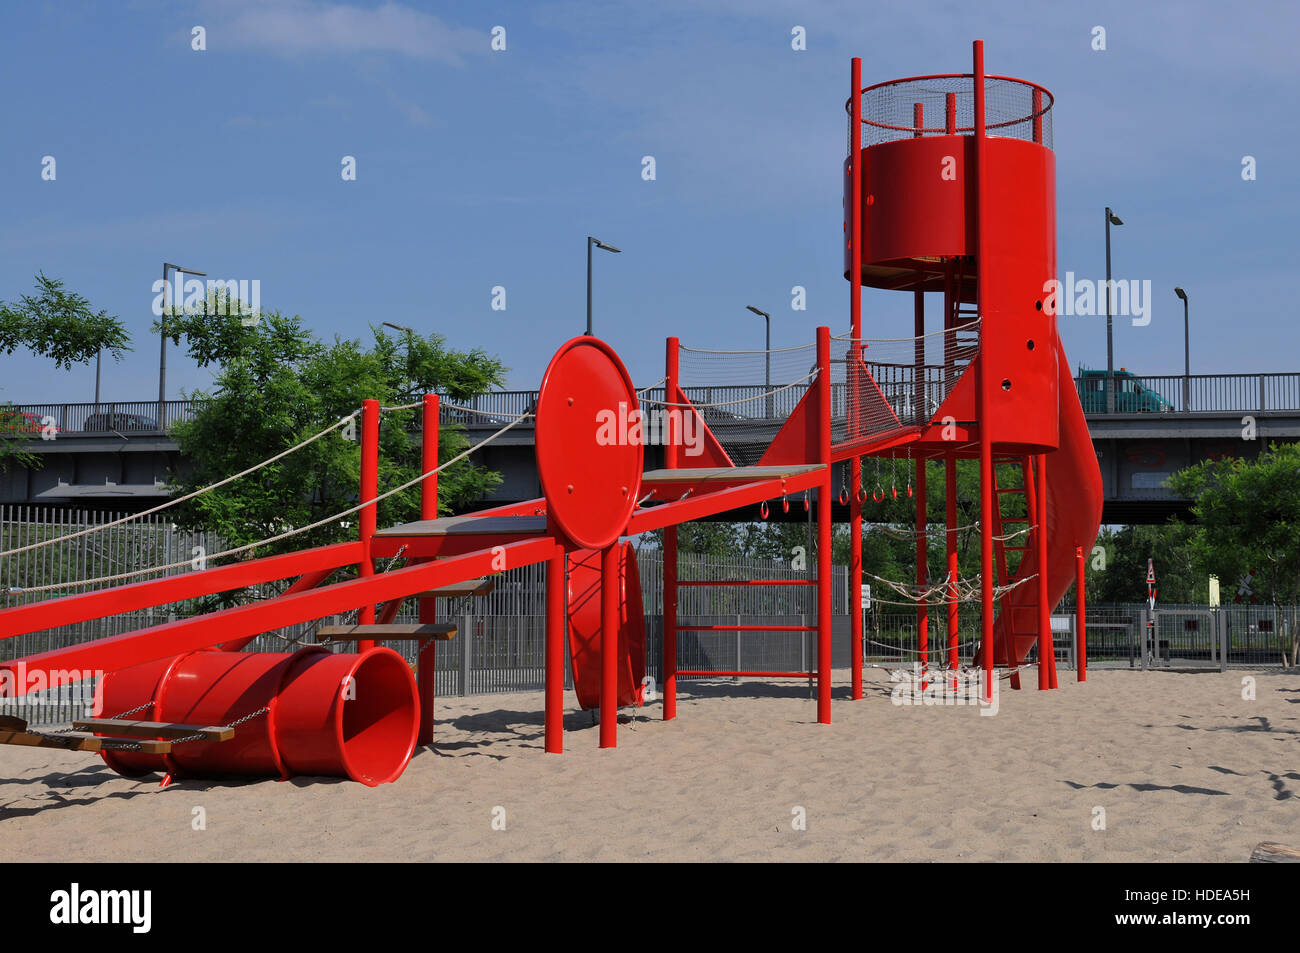 Spielplatz Berlin Kinder Spielplatz Stock Photos And Kinder Spielplatz Stock